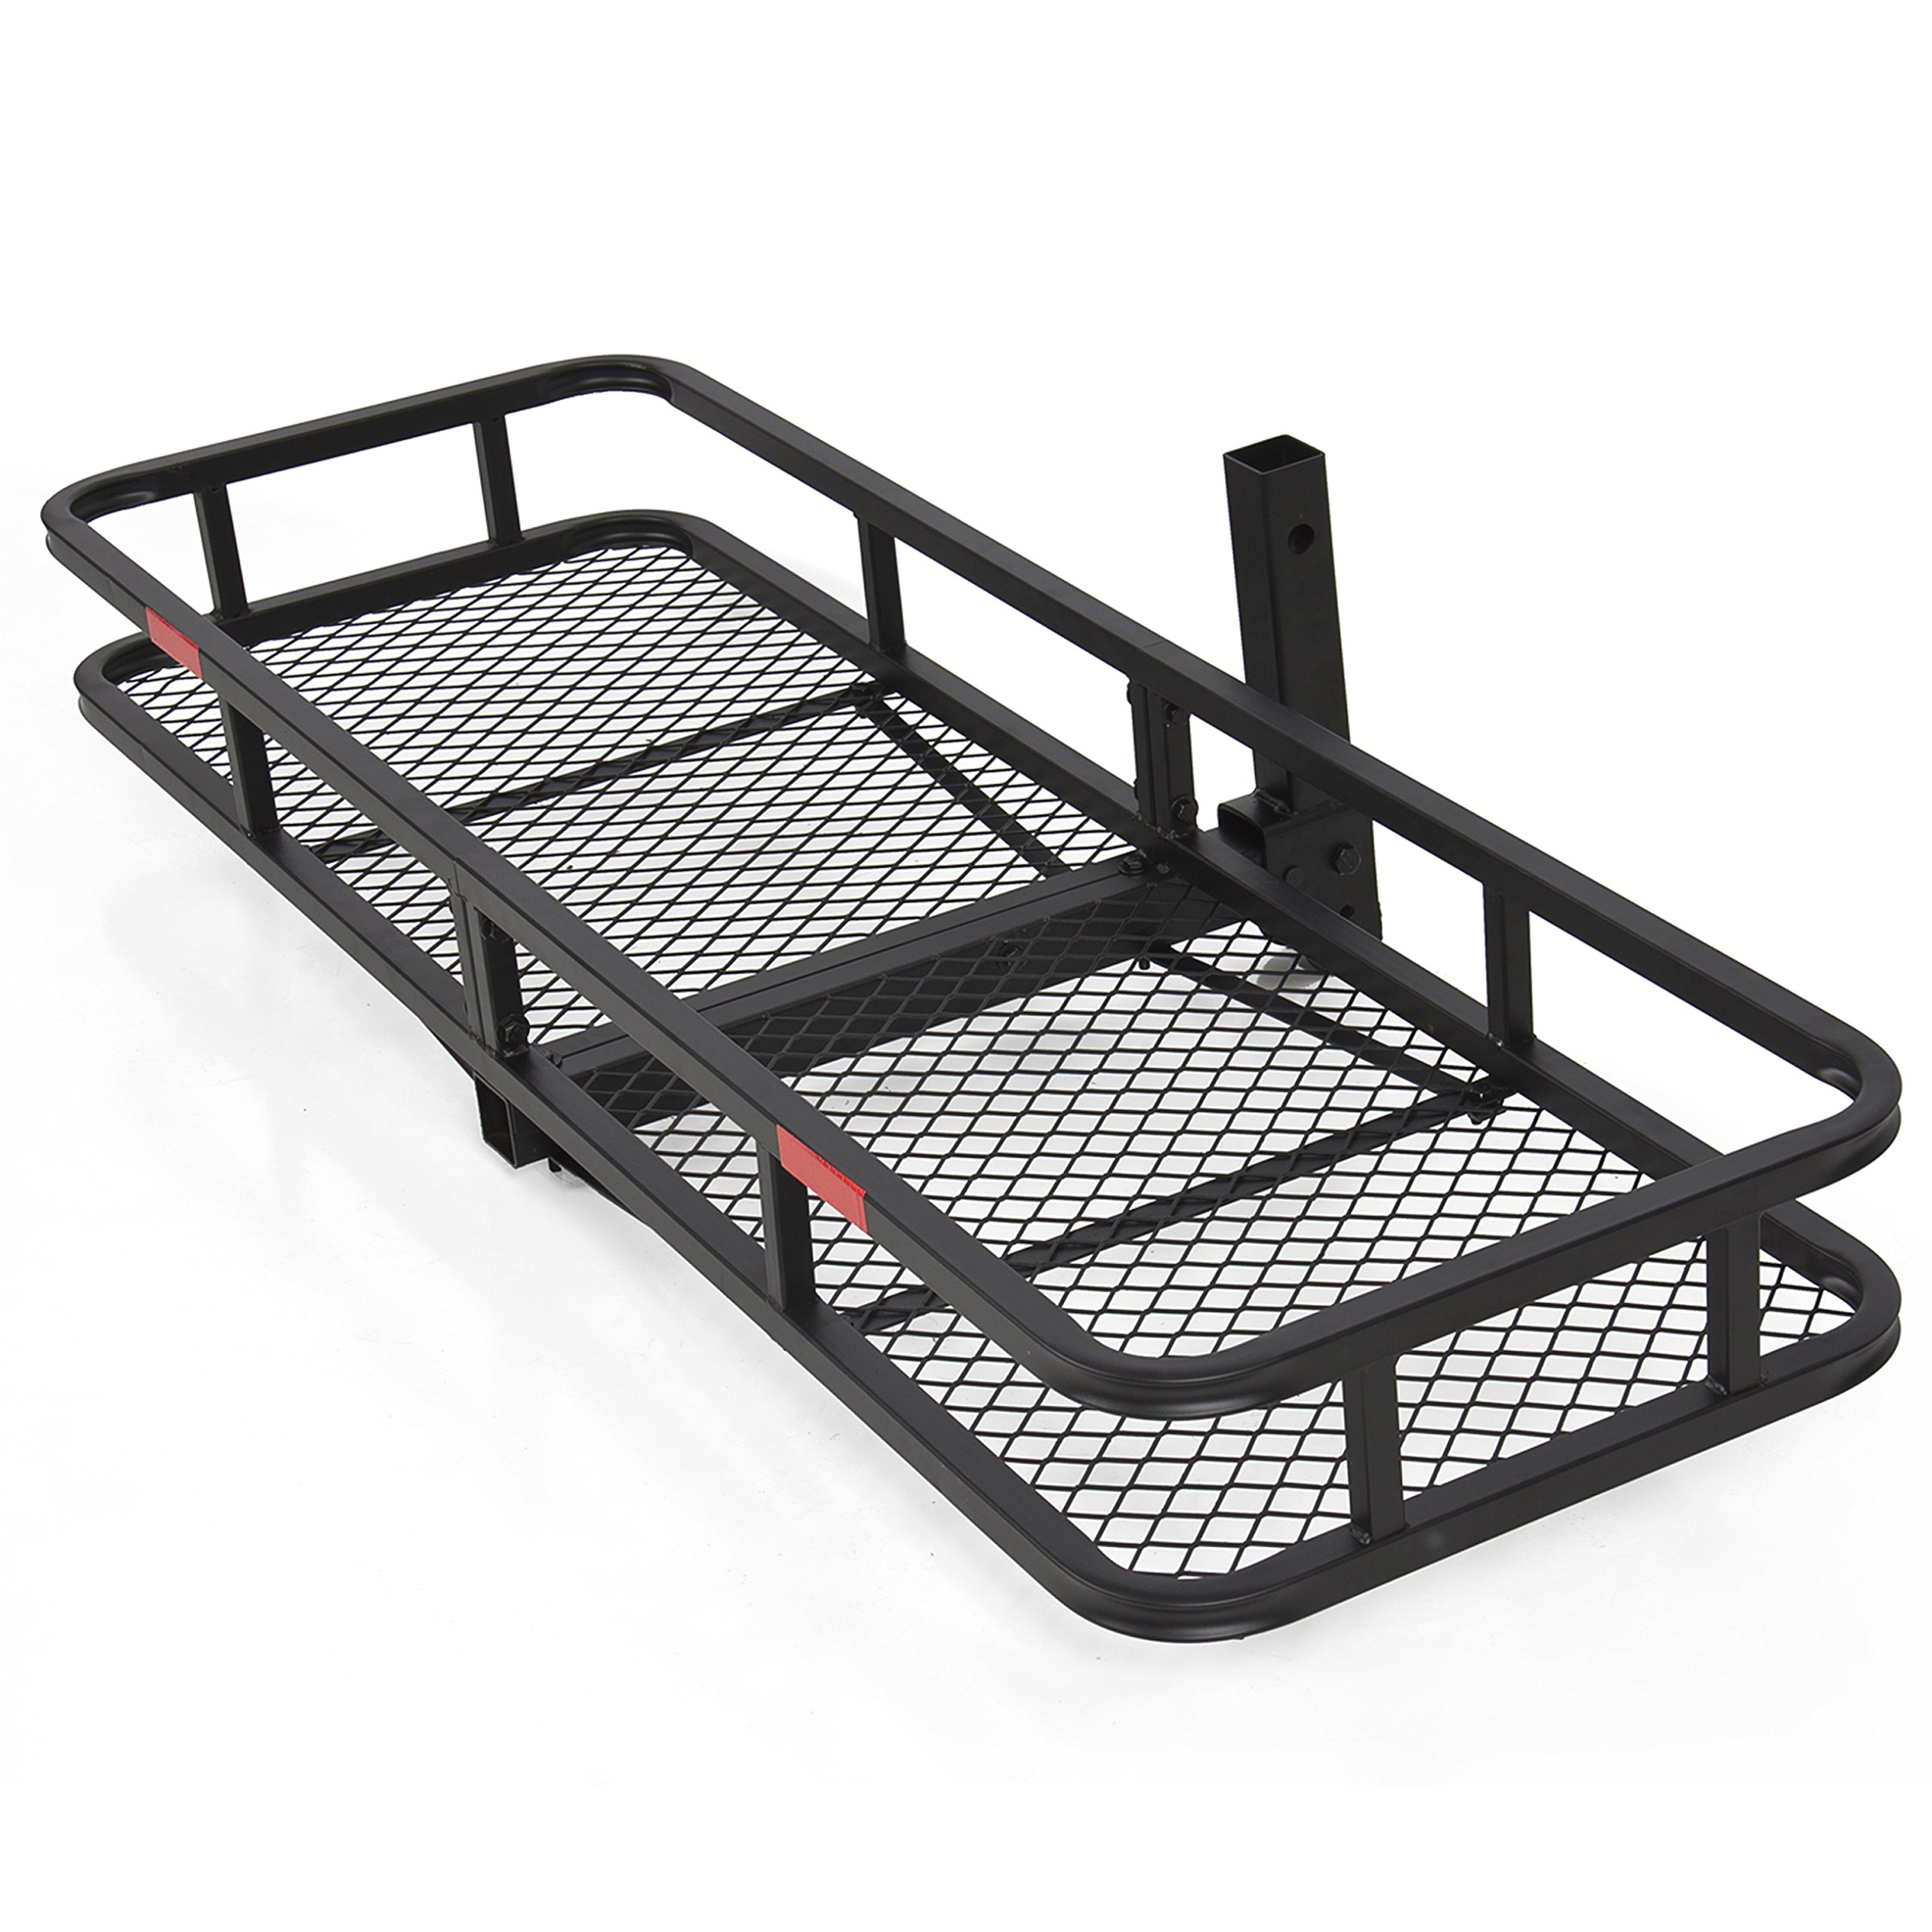 Best Choice Products SKY1658 60'' Folding Cargo Carrier Luggage Rack (Hauler Truck or Car Hitch 2'' Receiver) by Best Choice Products